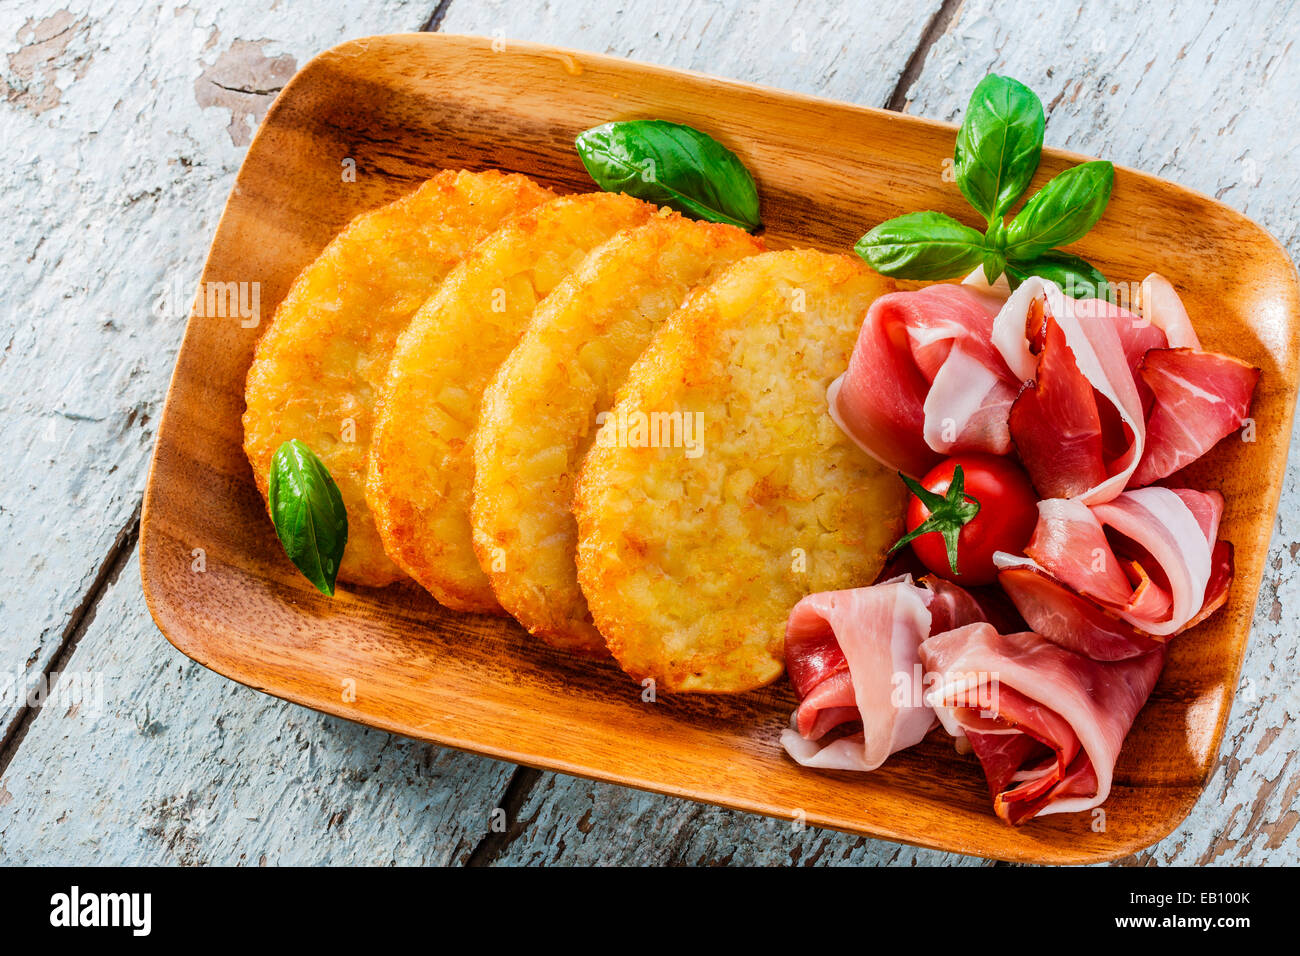 potato pancakes with pancetta prosciutto - Stock Image